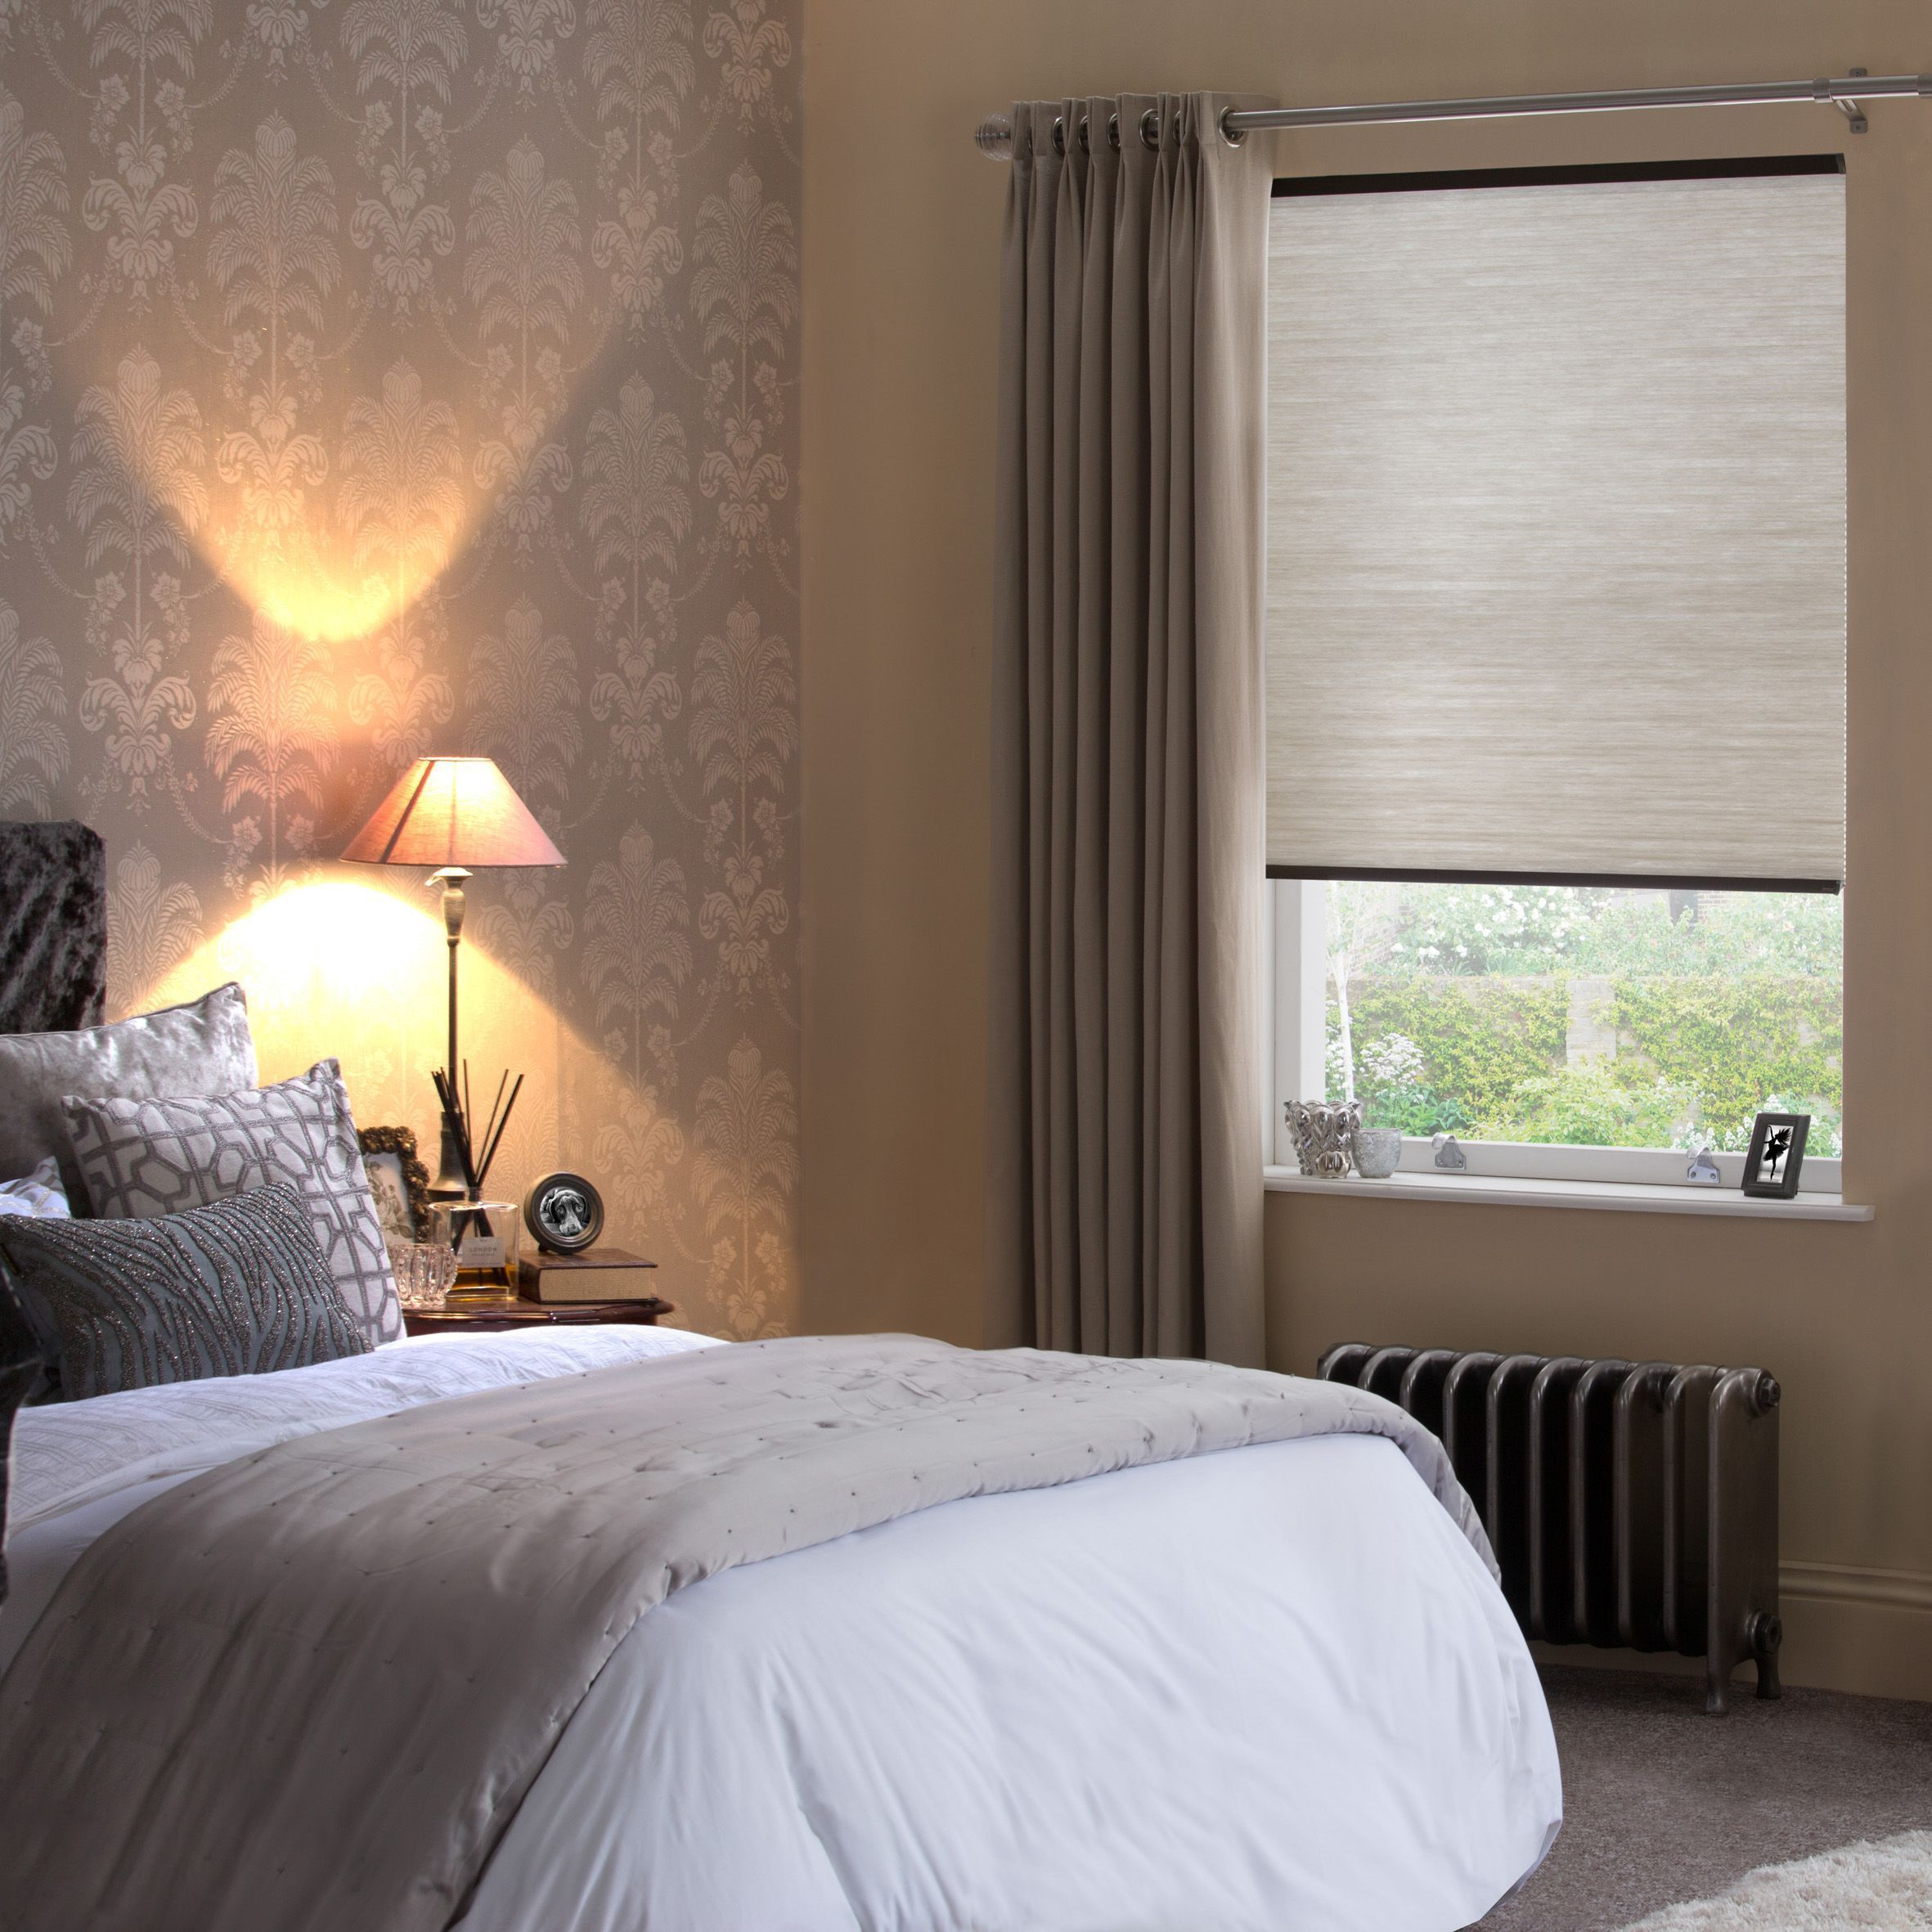 Roll up blinds doors blinds curtain living roomsmall bathroom